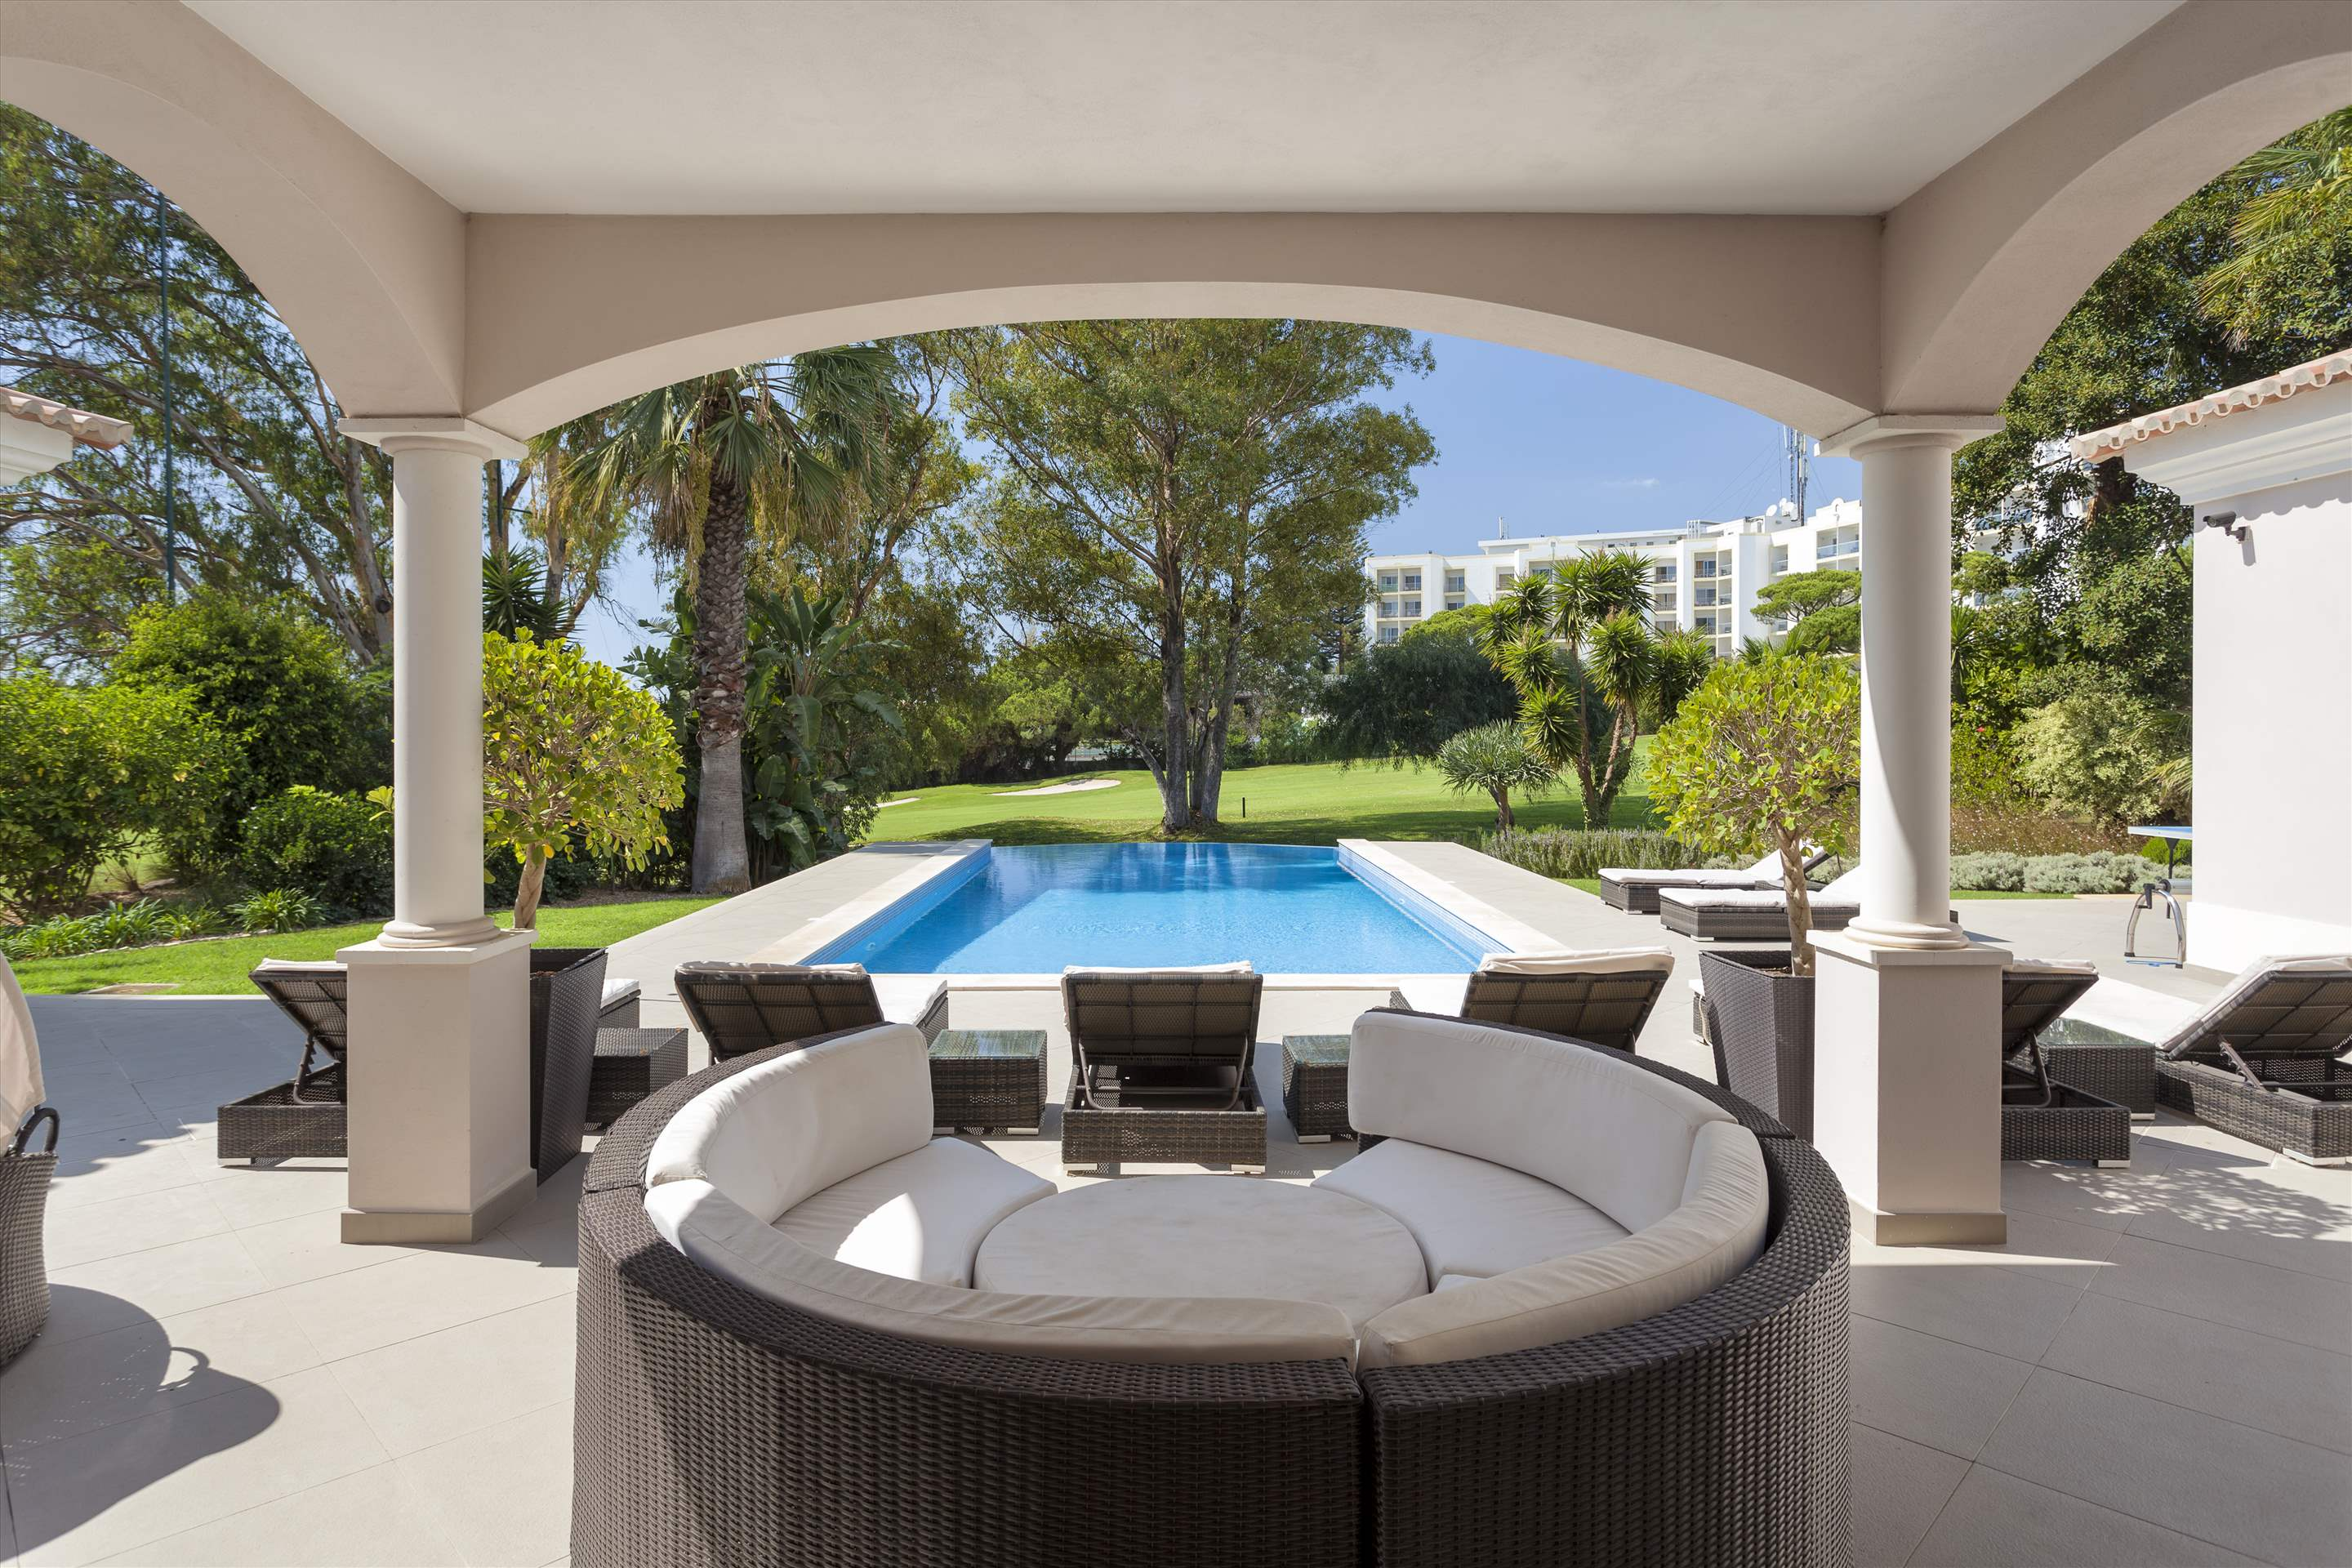 Villa Mar Azul, 5 bedroom villa in Vale do Lobo, Algarve Photo #3